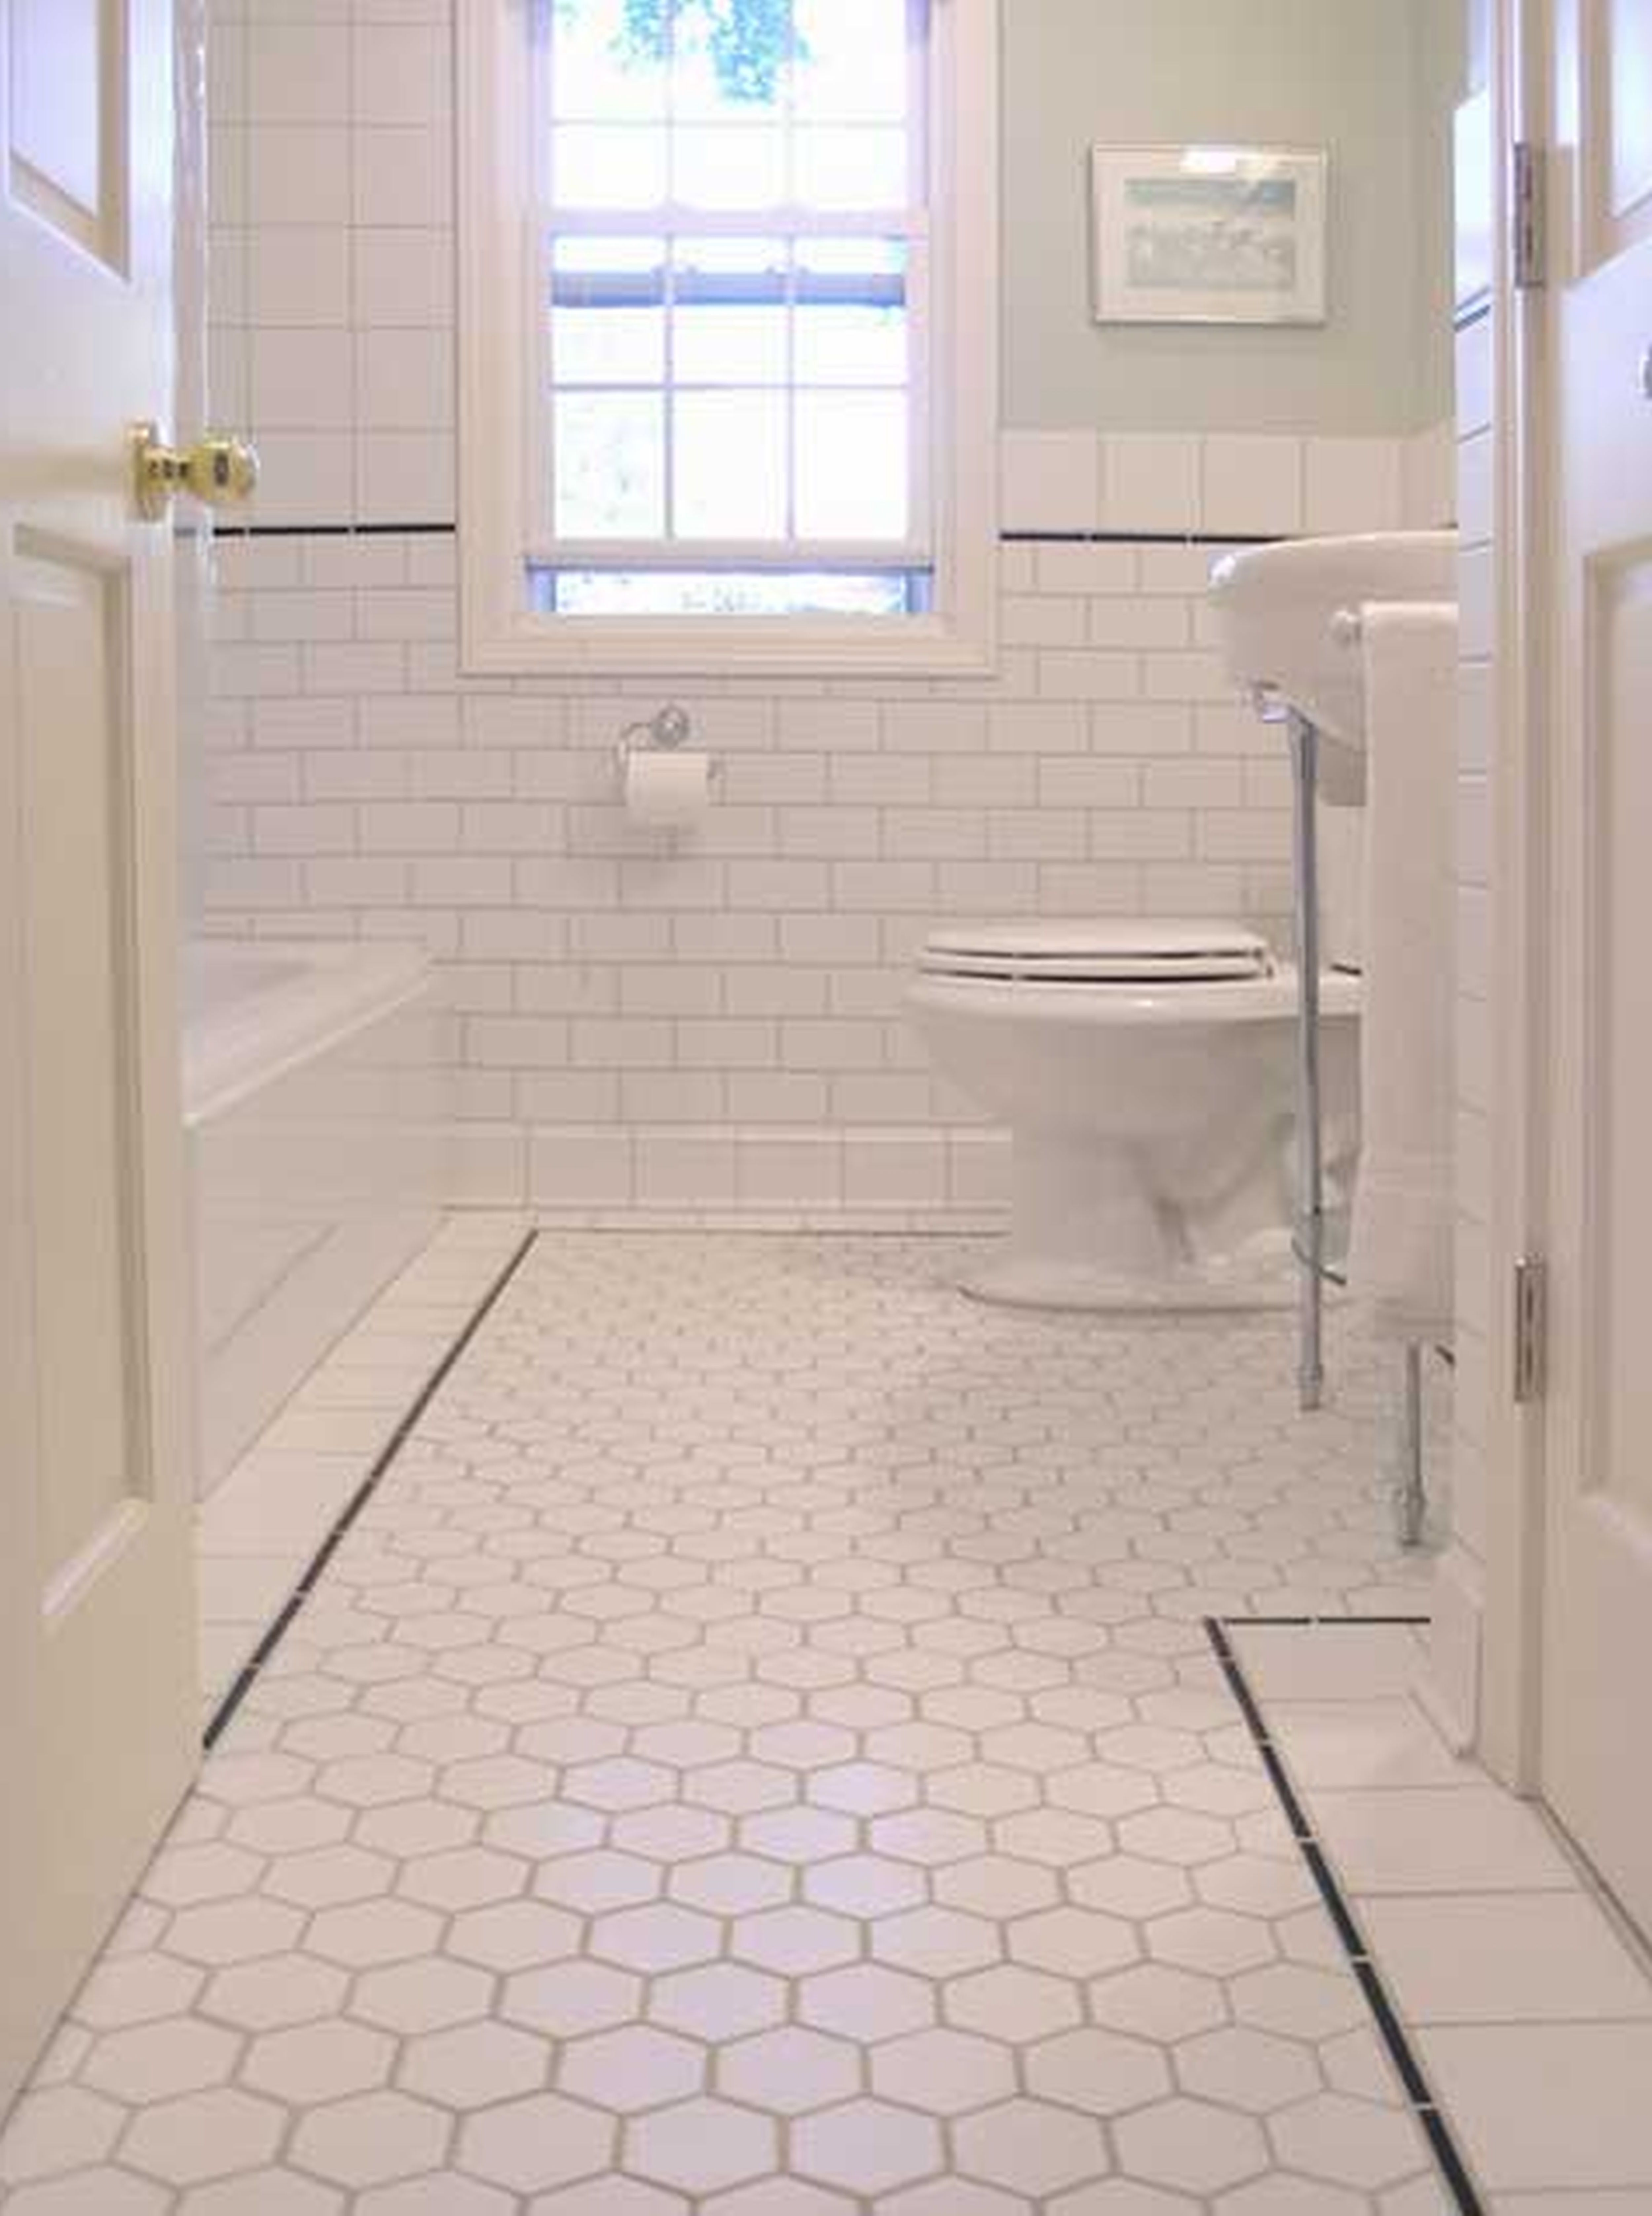 Bathroom Nice Tile Window Without Curtain In Small Bathroom With